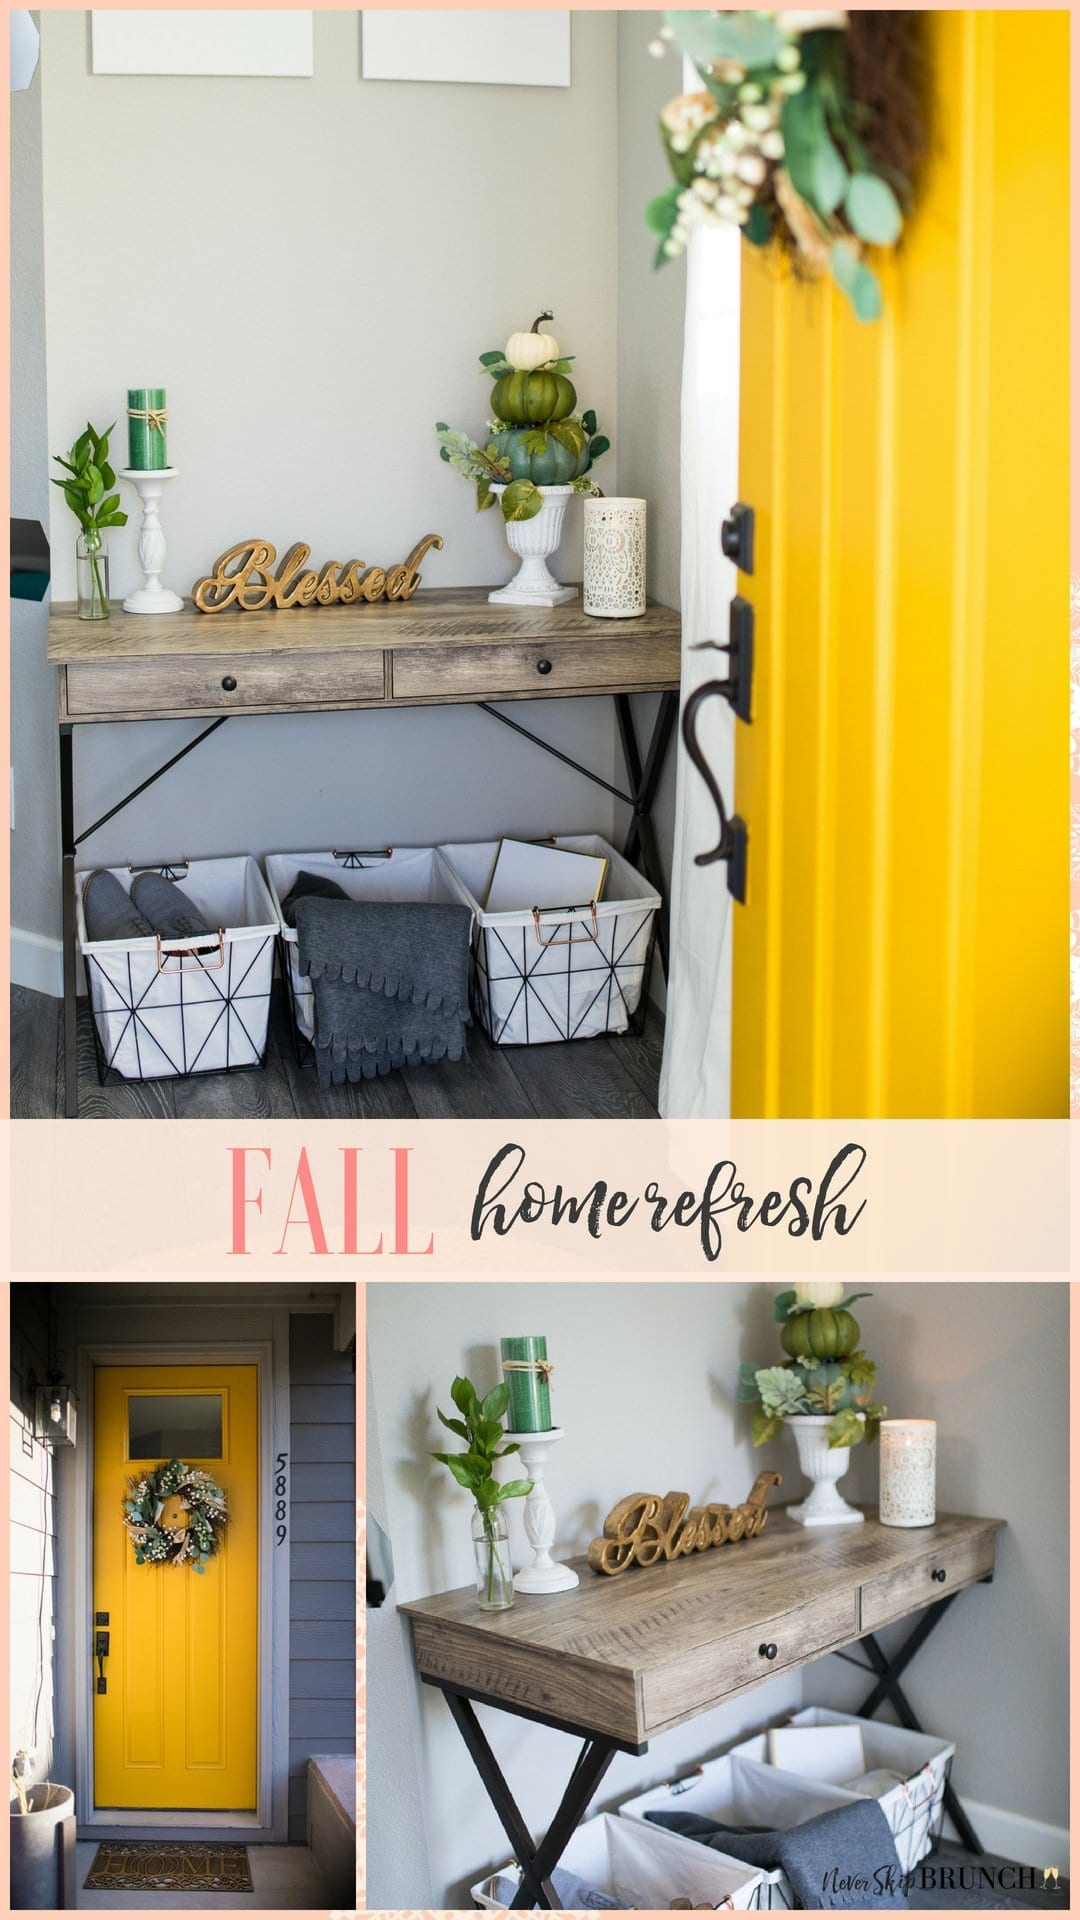 Check out this fall decor not orange and my fall decor ideas for the home | never skip brunch by cara newhart #decor #fall #neverskipbrunch